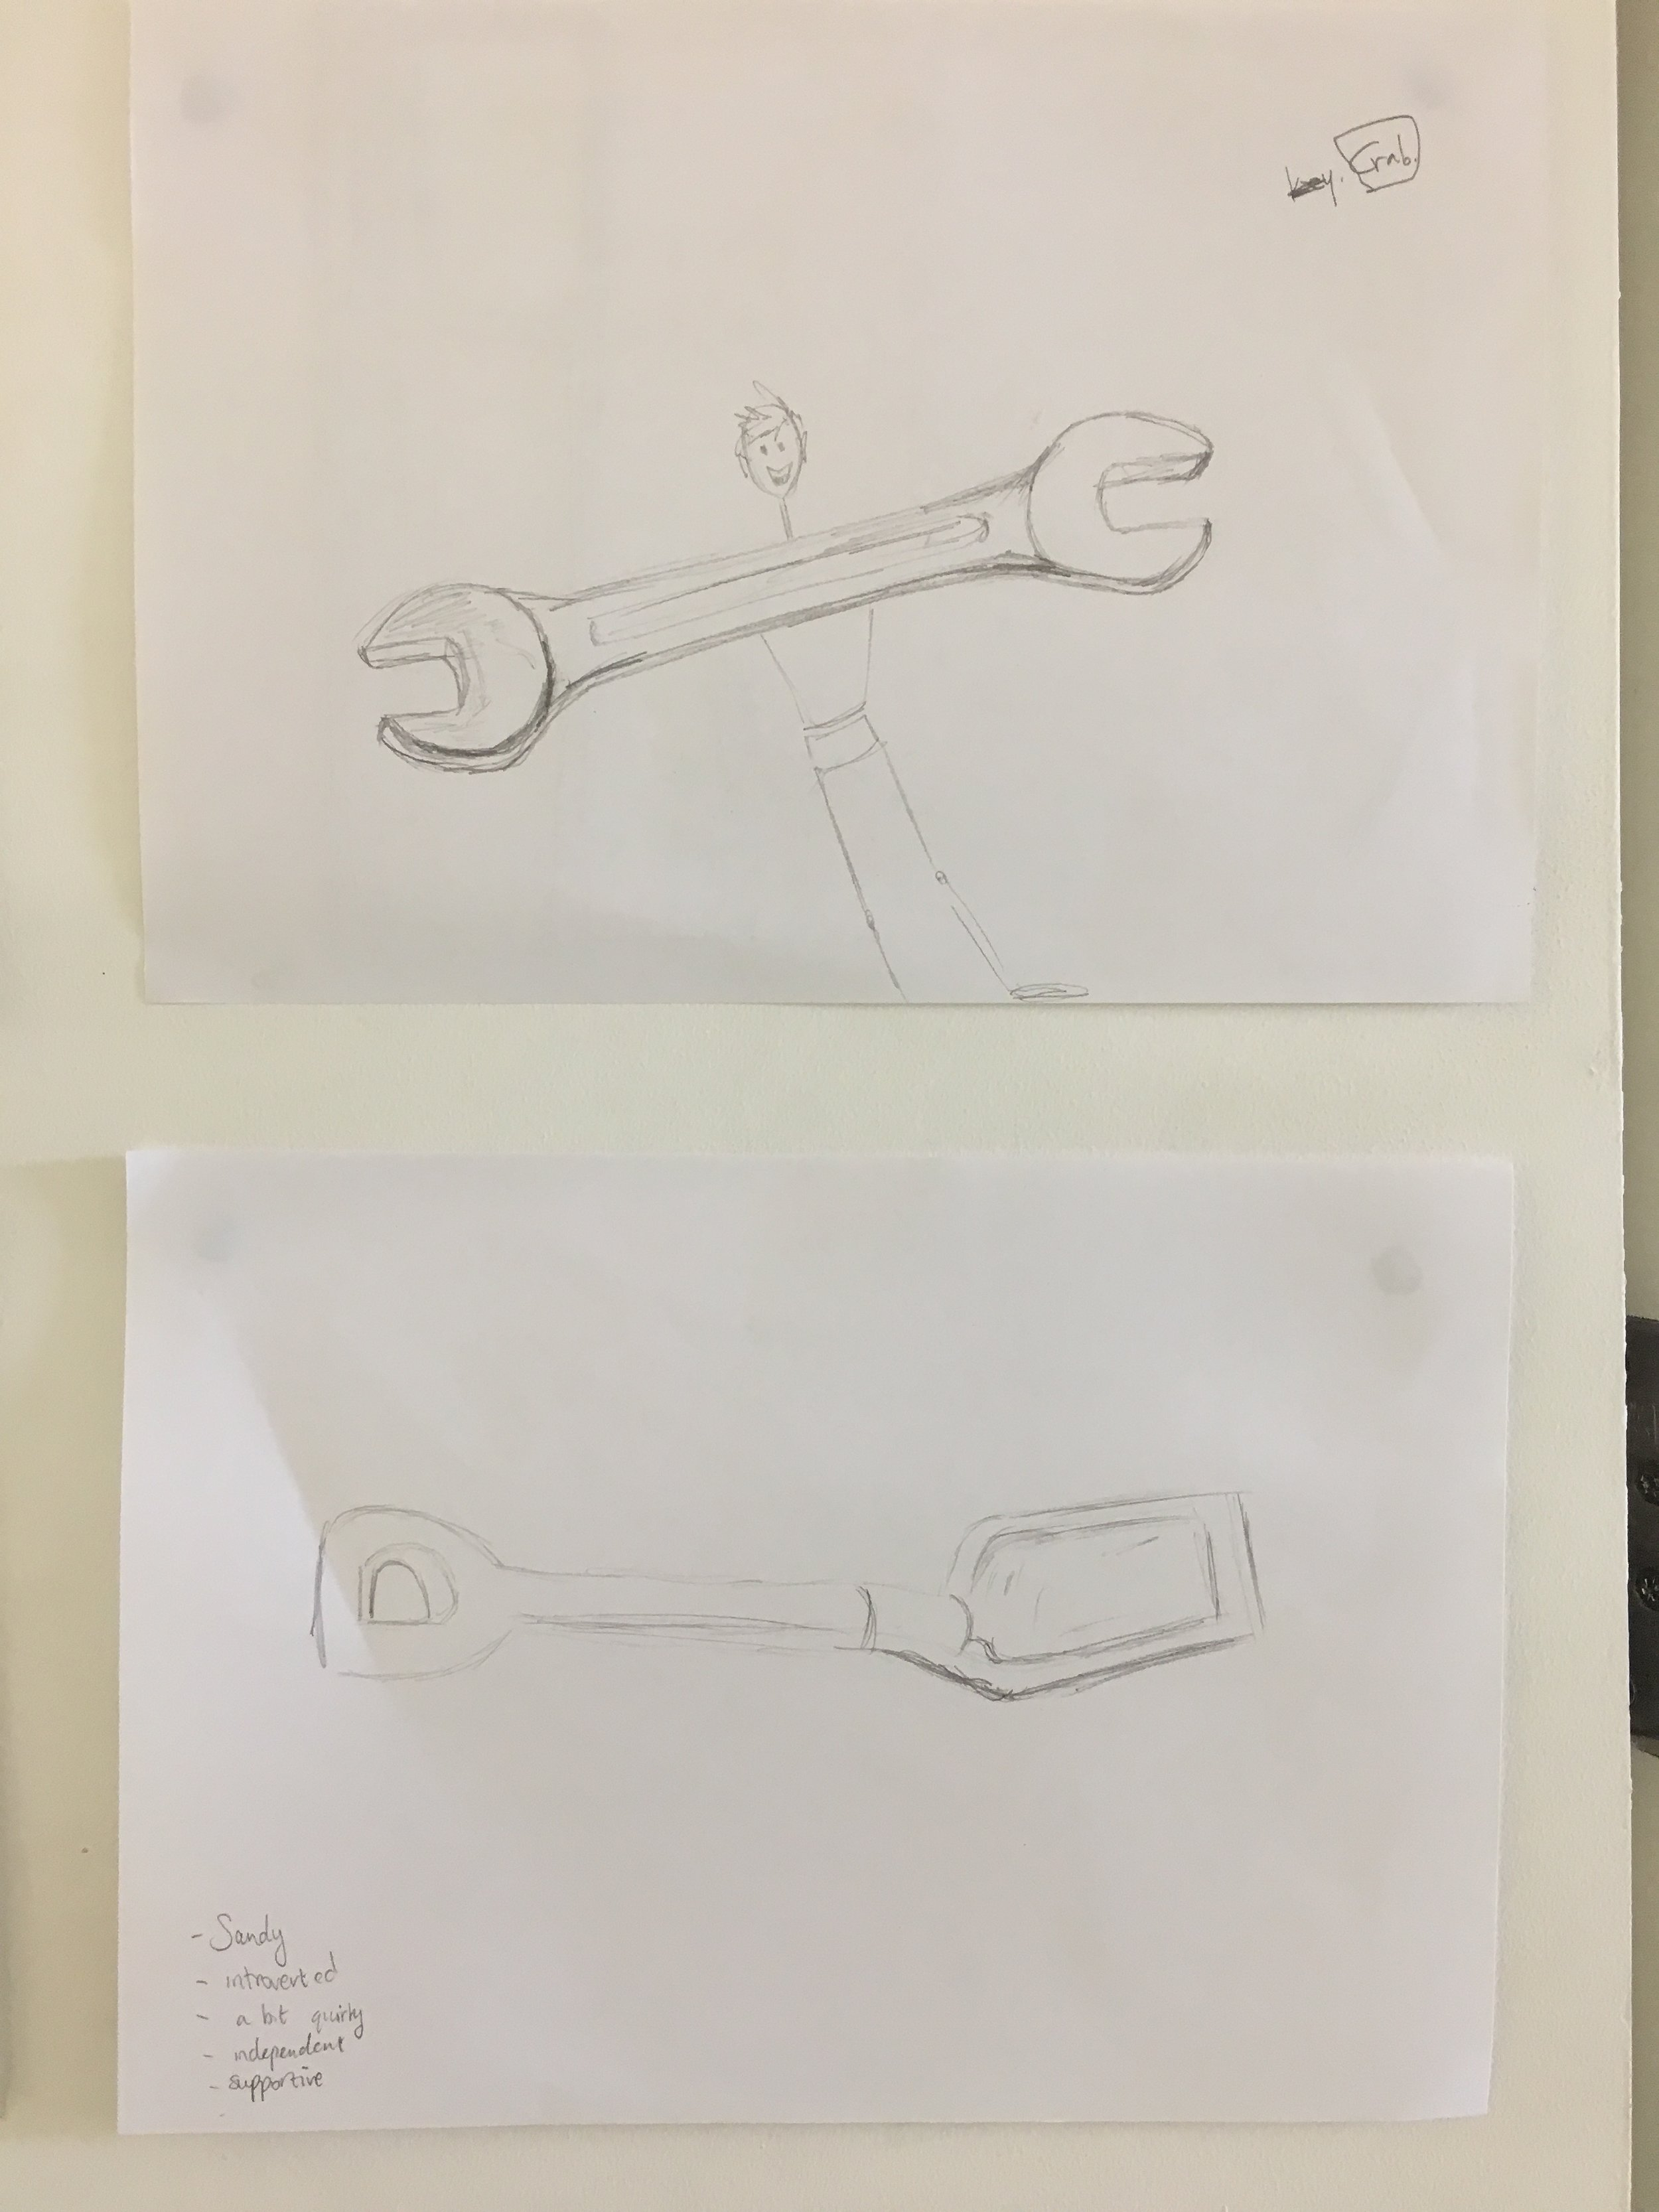 Aoife had brought in everyday objects for the group to draw - a cup, a hammer, a plant. After they had drawn these objects they were asked to transform them into a character…